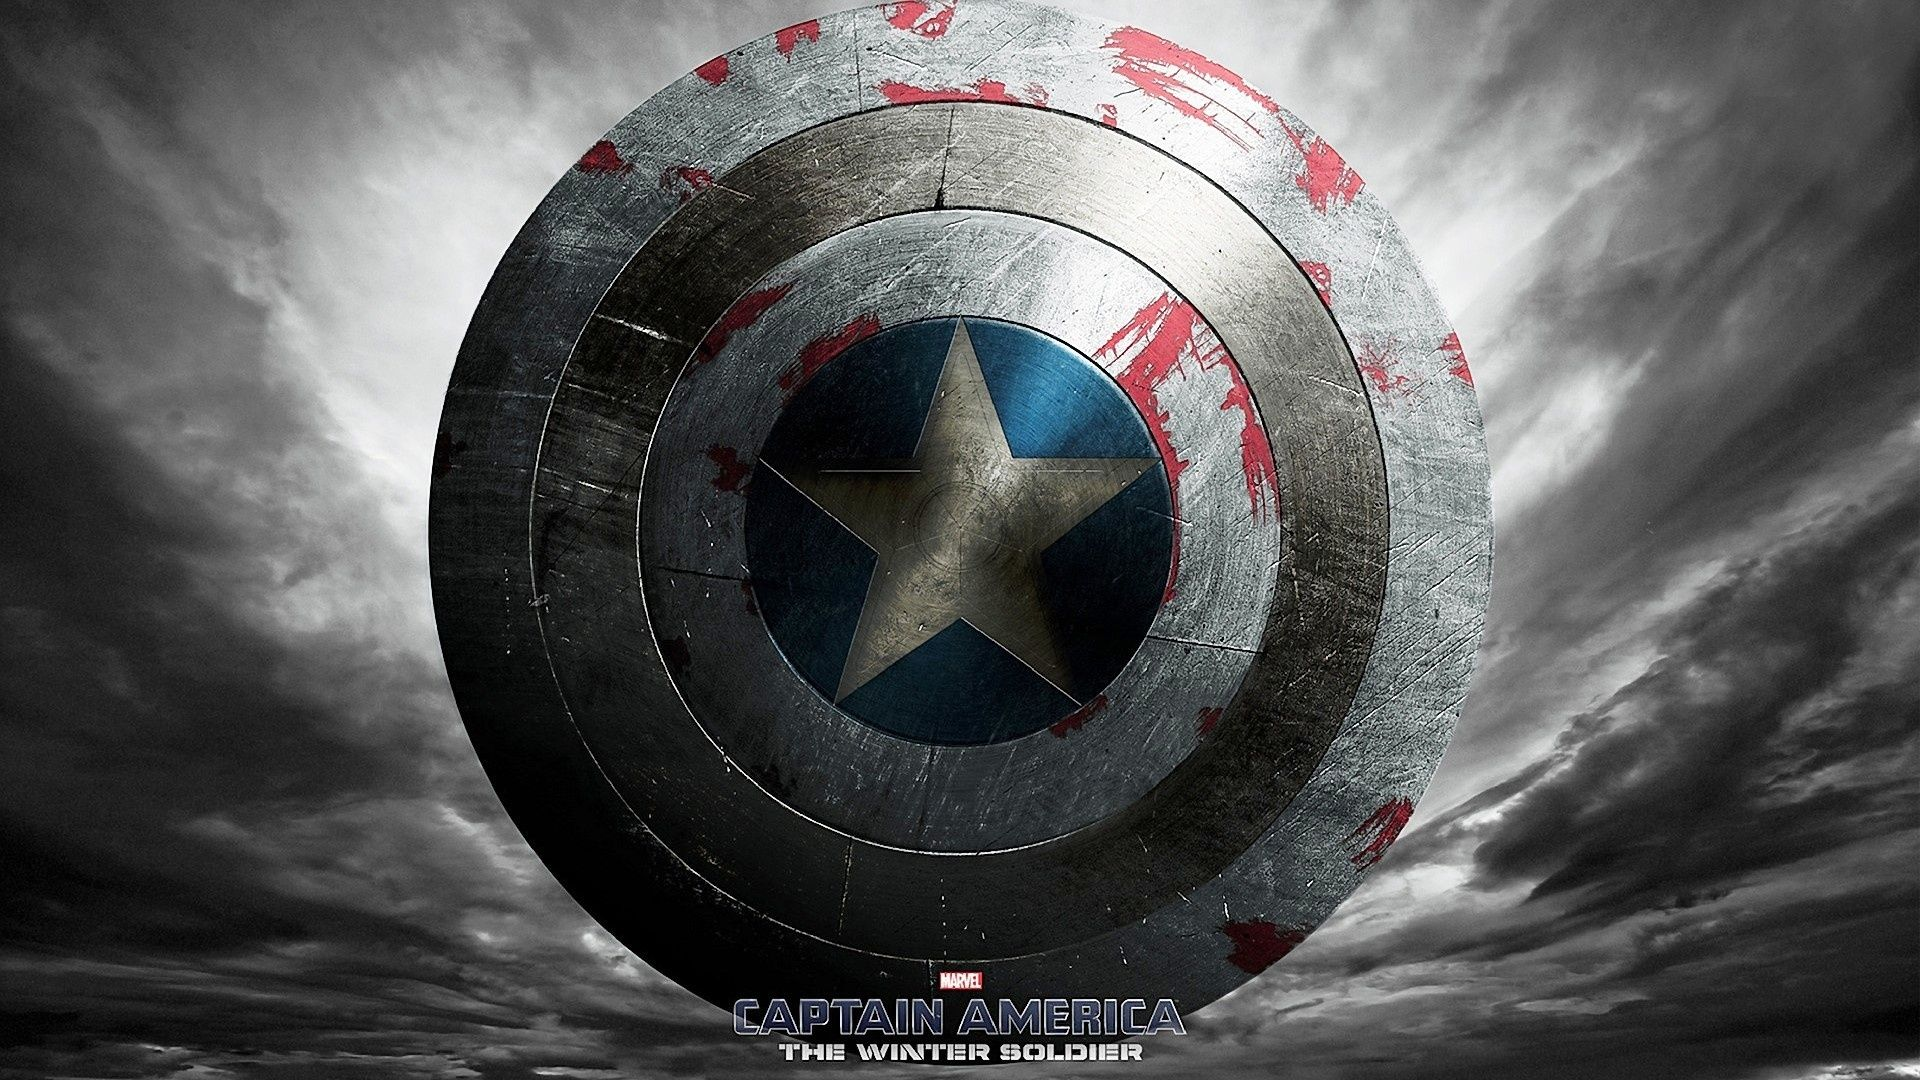 captain america hd wallpapers backgrounds wallpaper | avengers